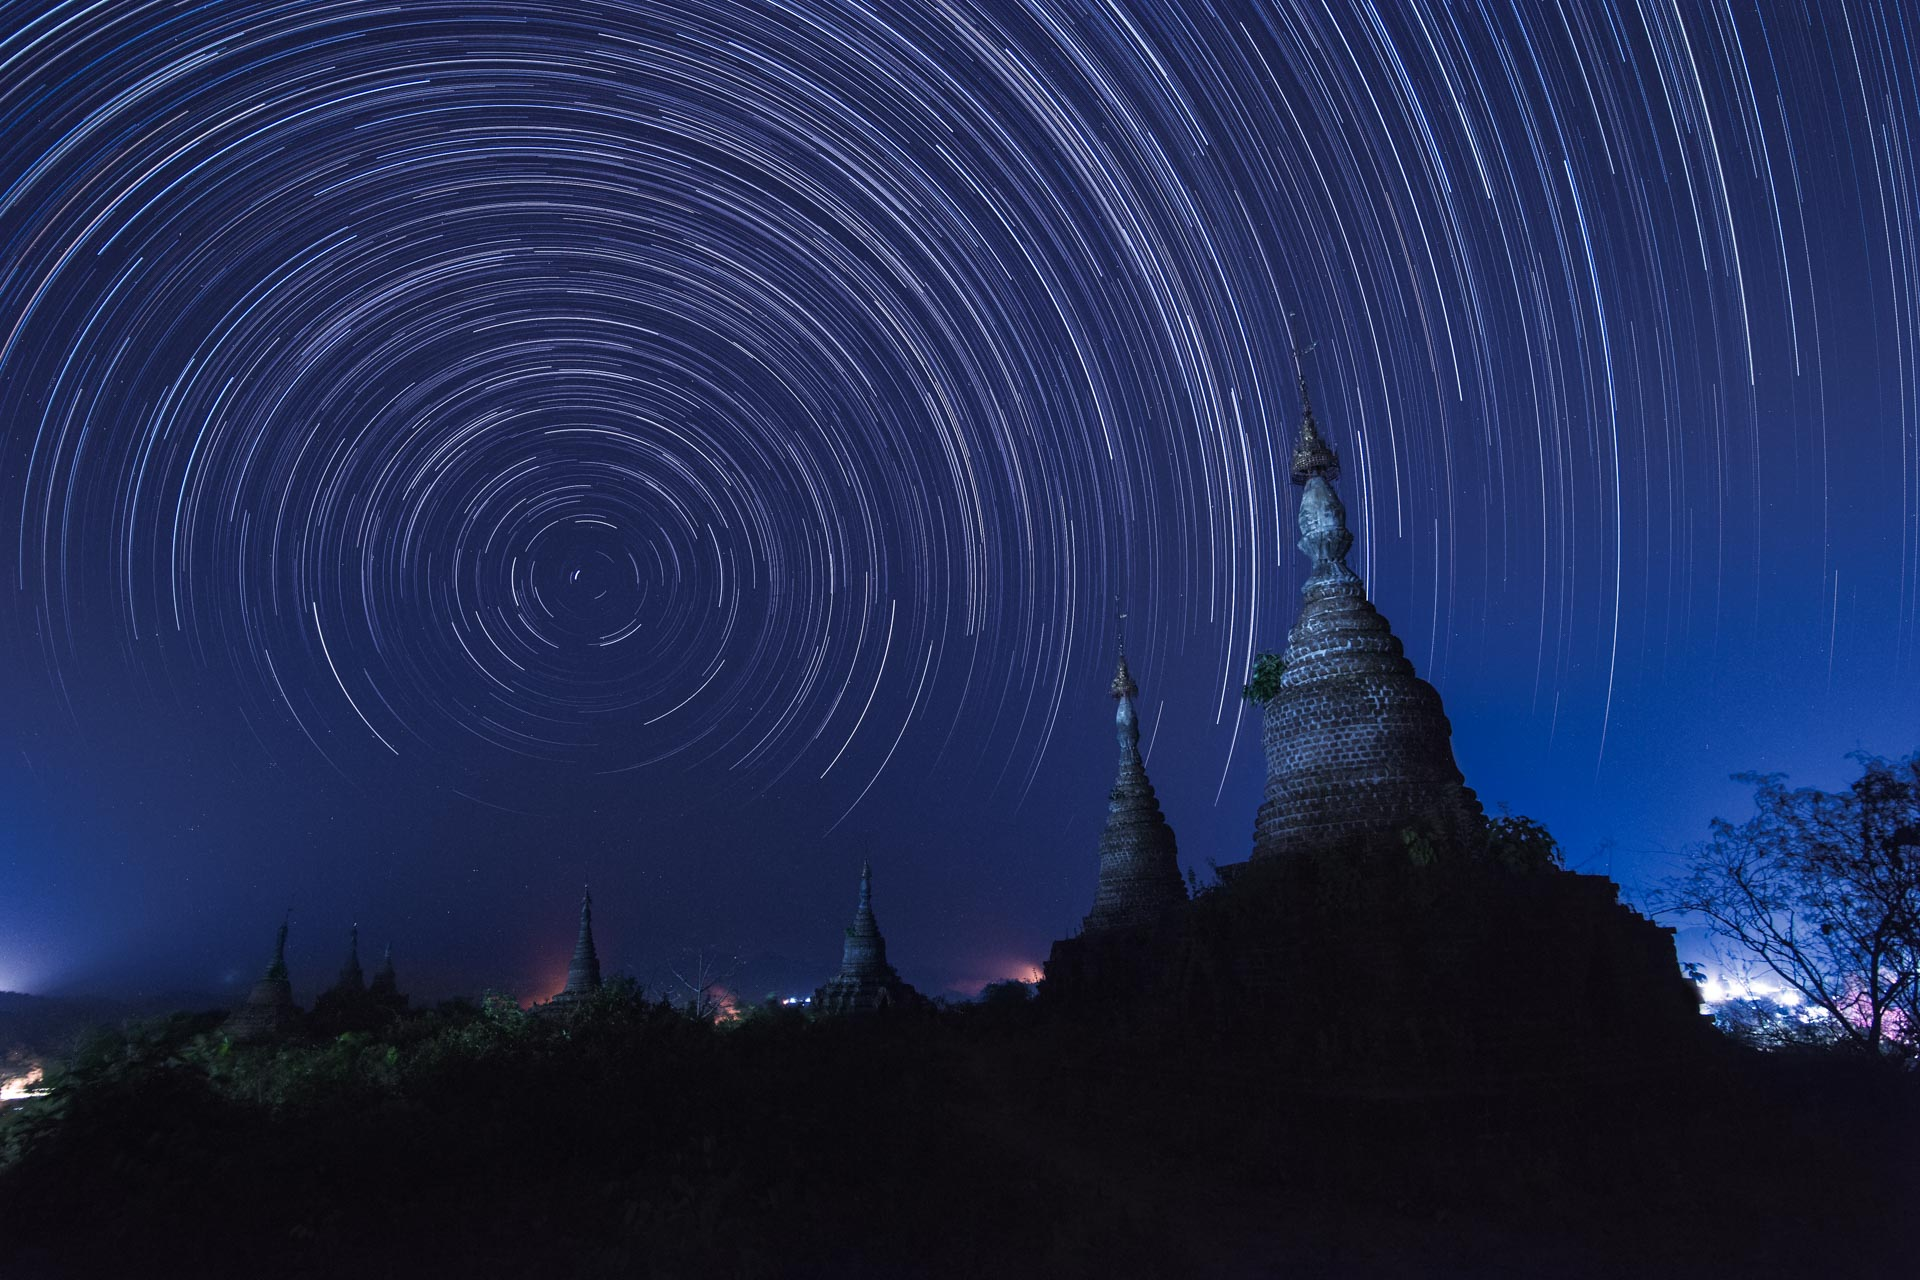 Star trails over stupas in Mrauk U. Myanmar.